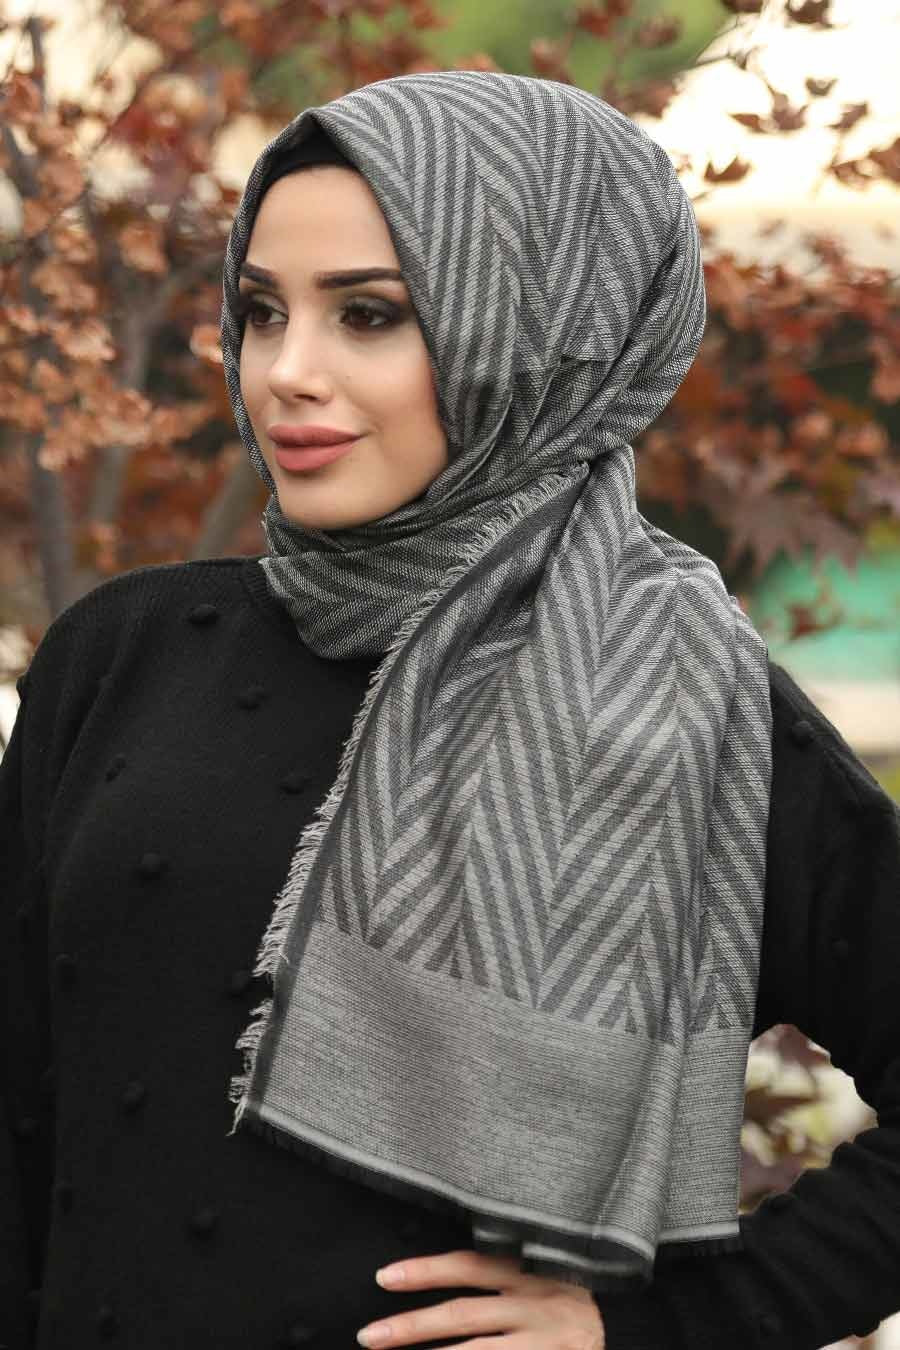 Women's Zig Zag Pattern Grey Shawl